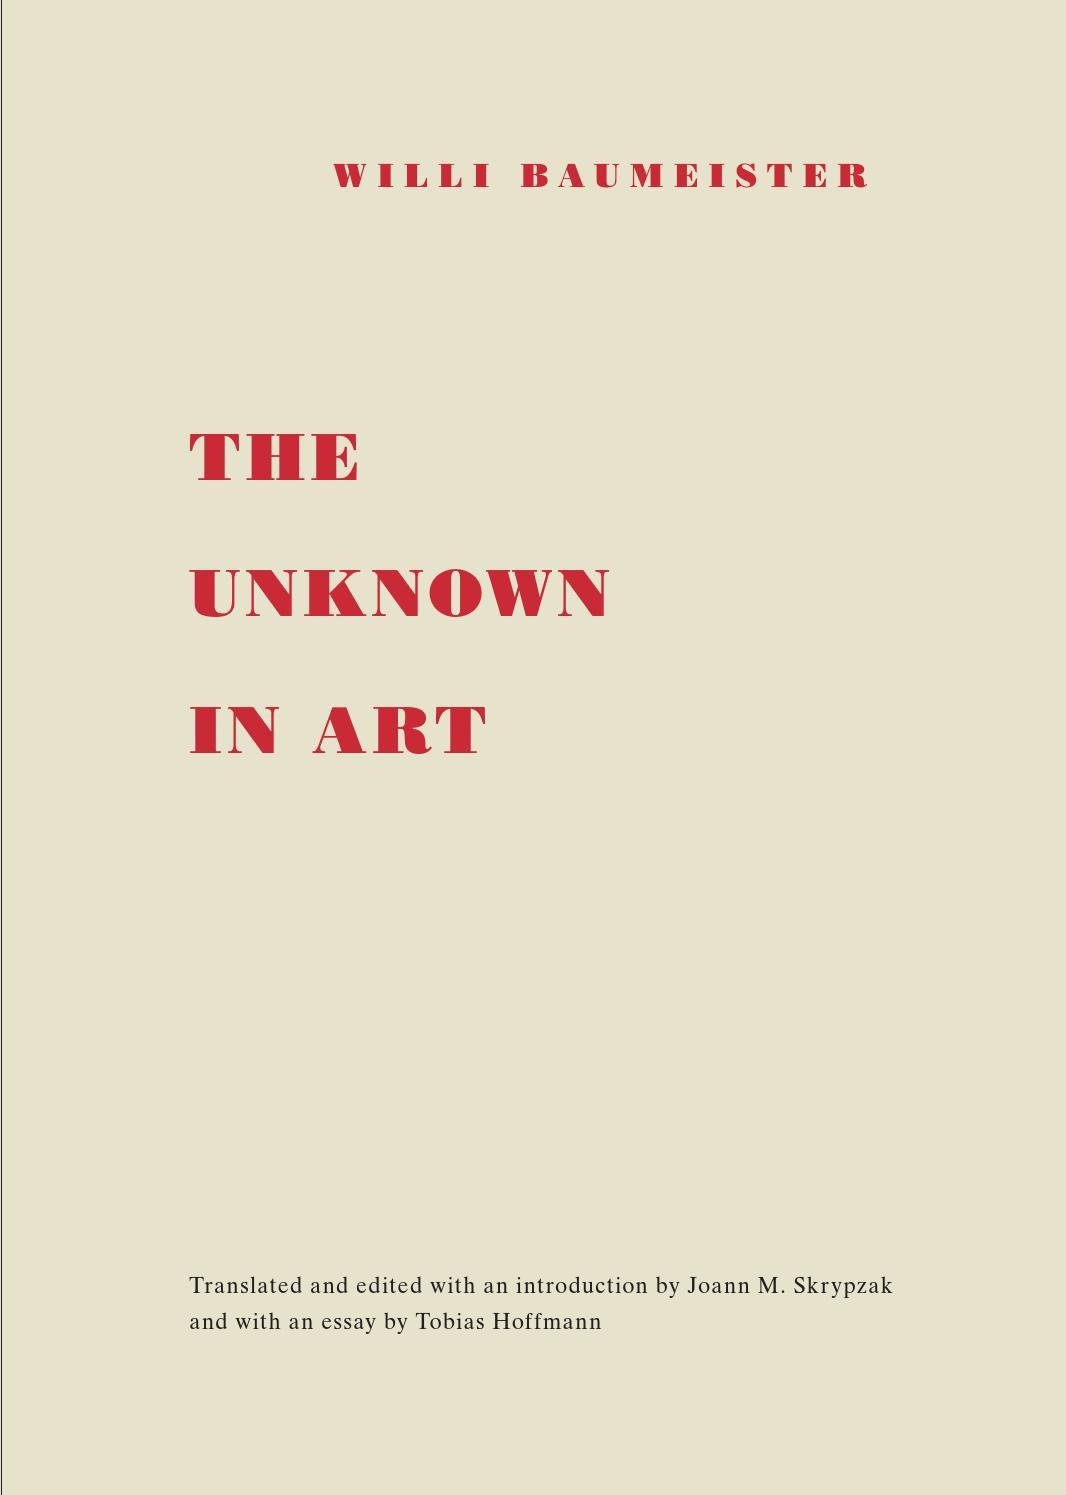 Willi Baumeister The Unknown In Art By Willi Baumeister Stiftung